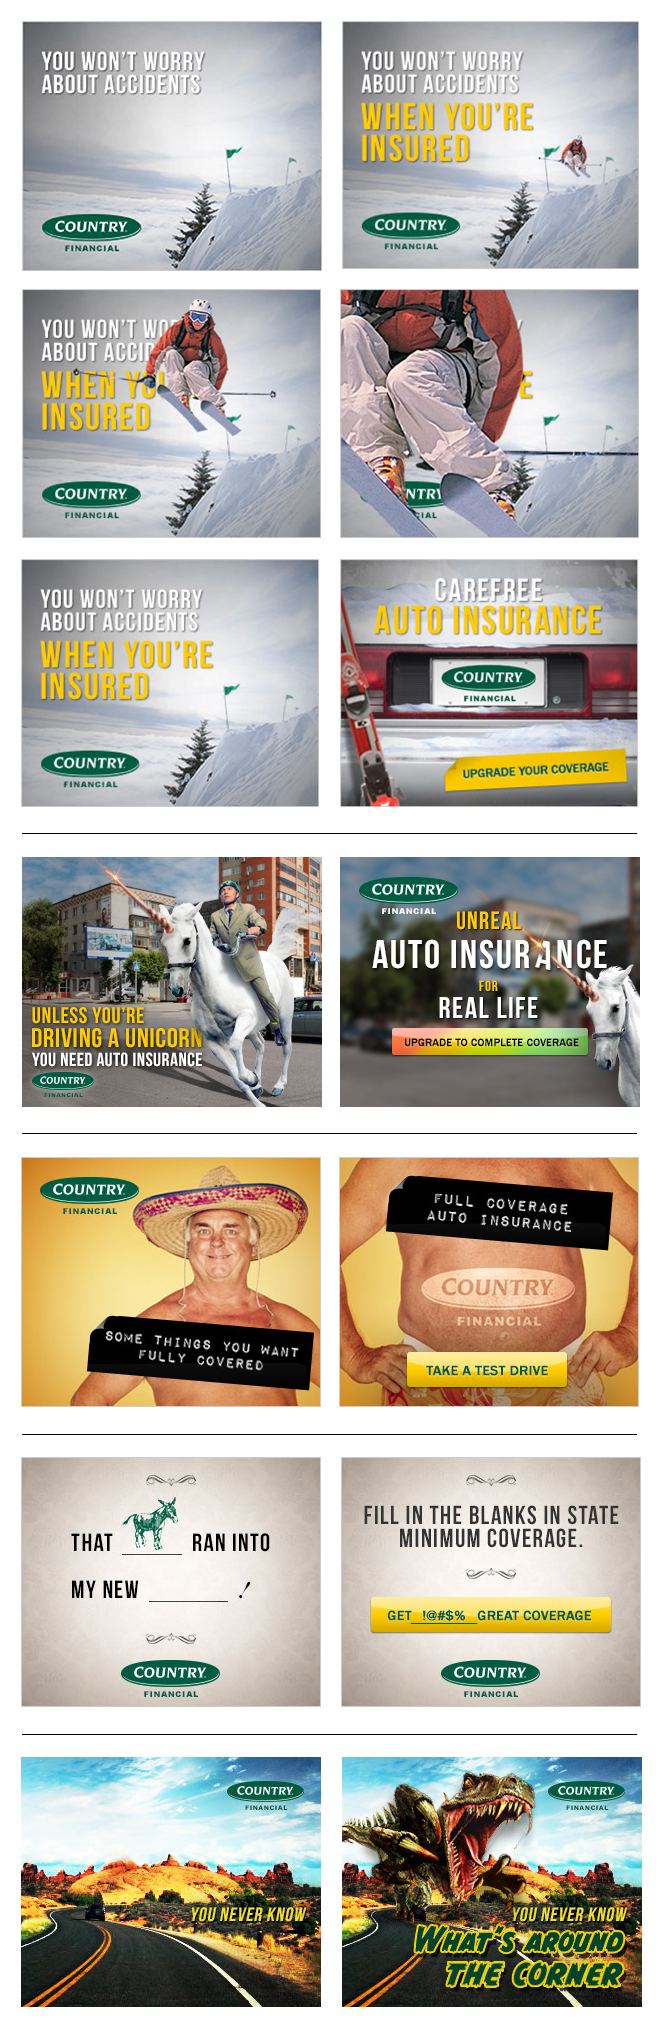 Country Financial Car Insurance >> Country Financial Auto Insurance Banner Copywriting